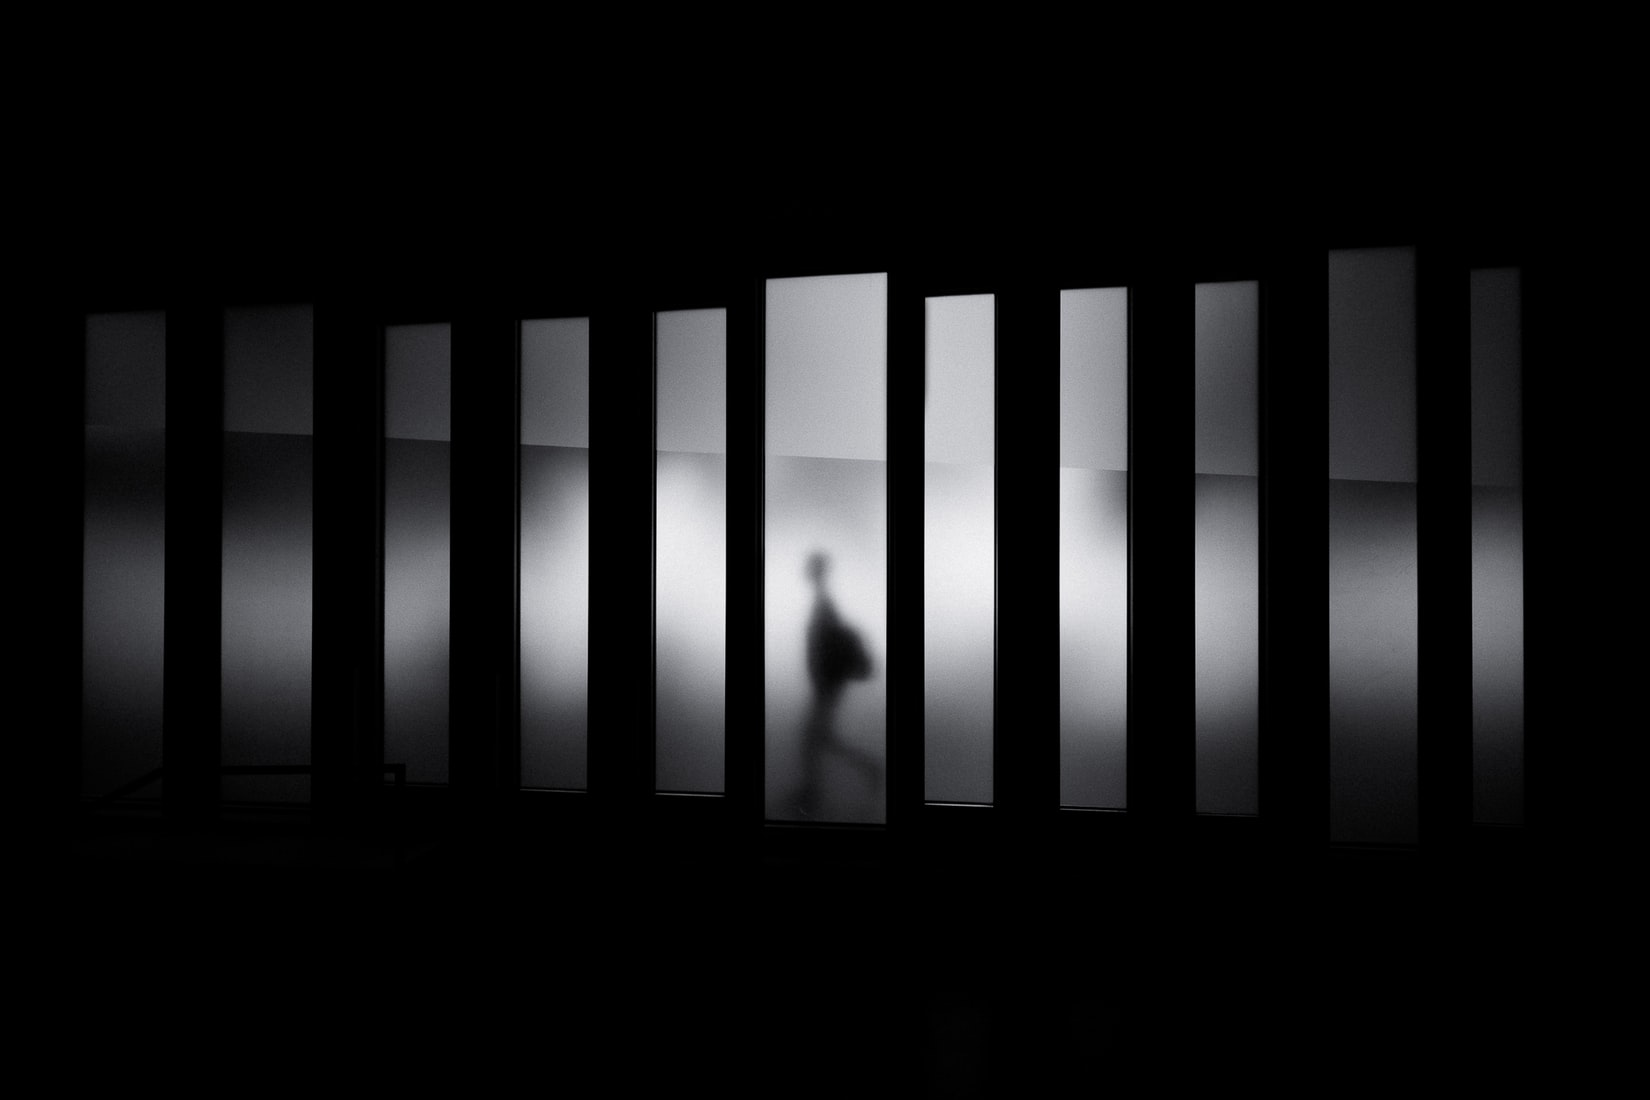 Grayscale photo of person with backpack walking in black and gray panel paintings